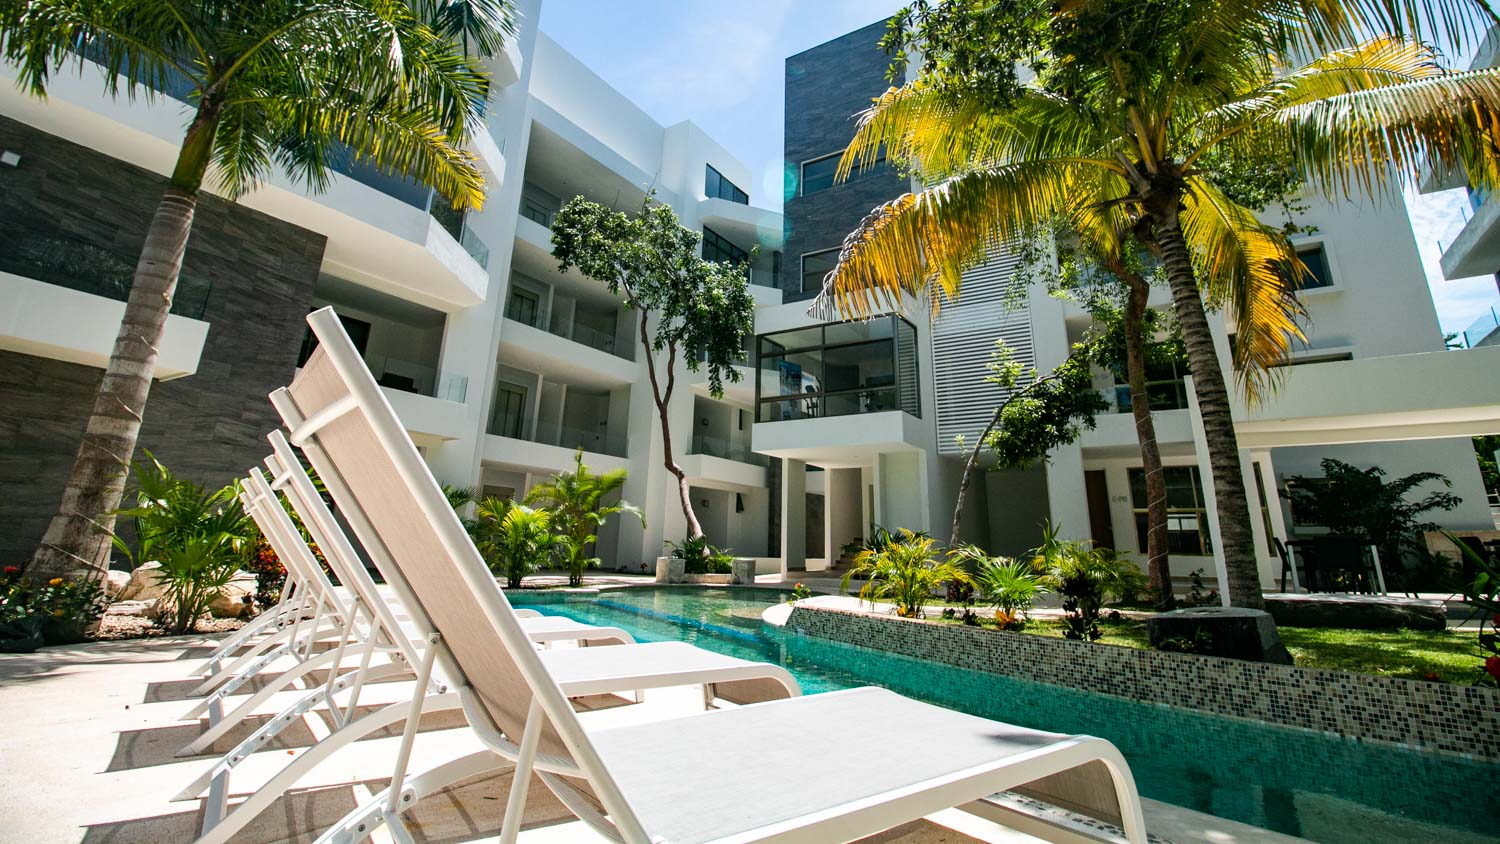 SAas-Kib Condos - Your retirement home in Playa del Carmen property for sale